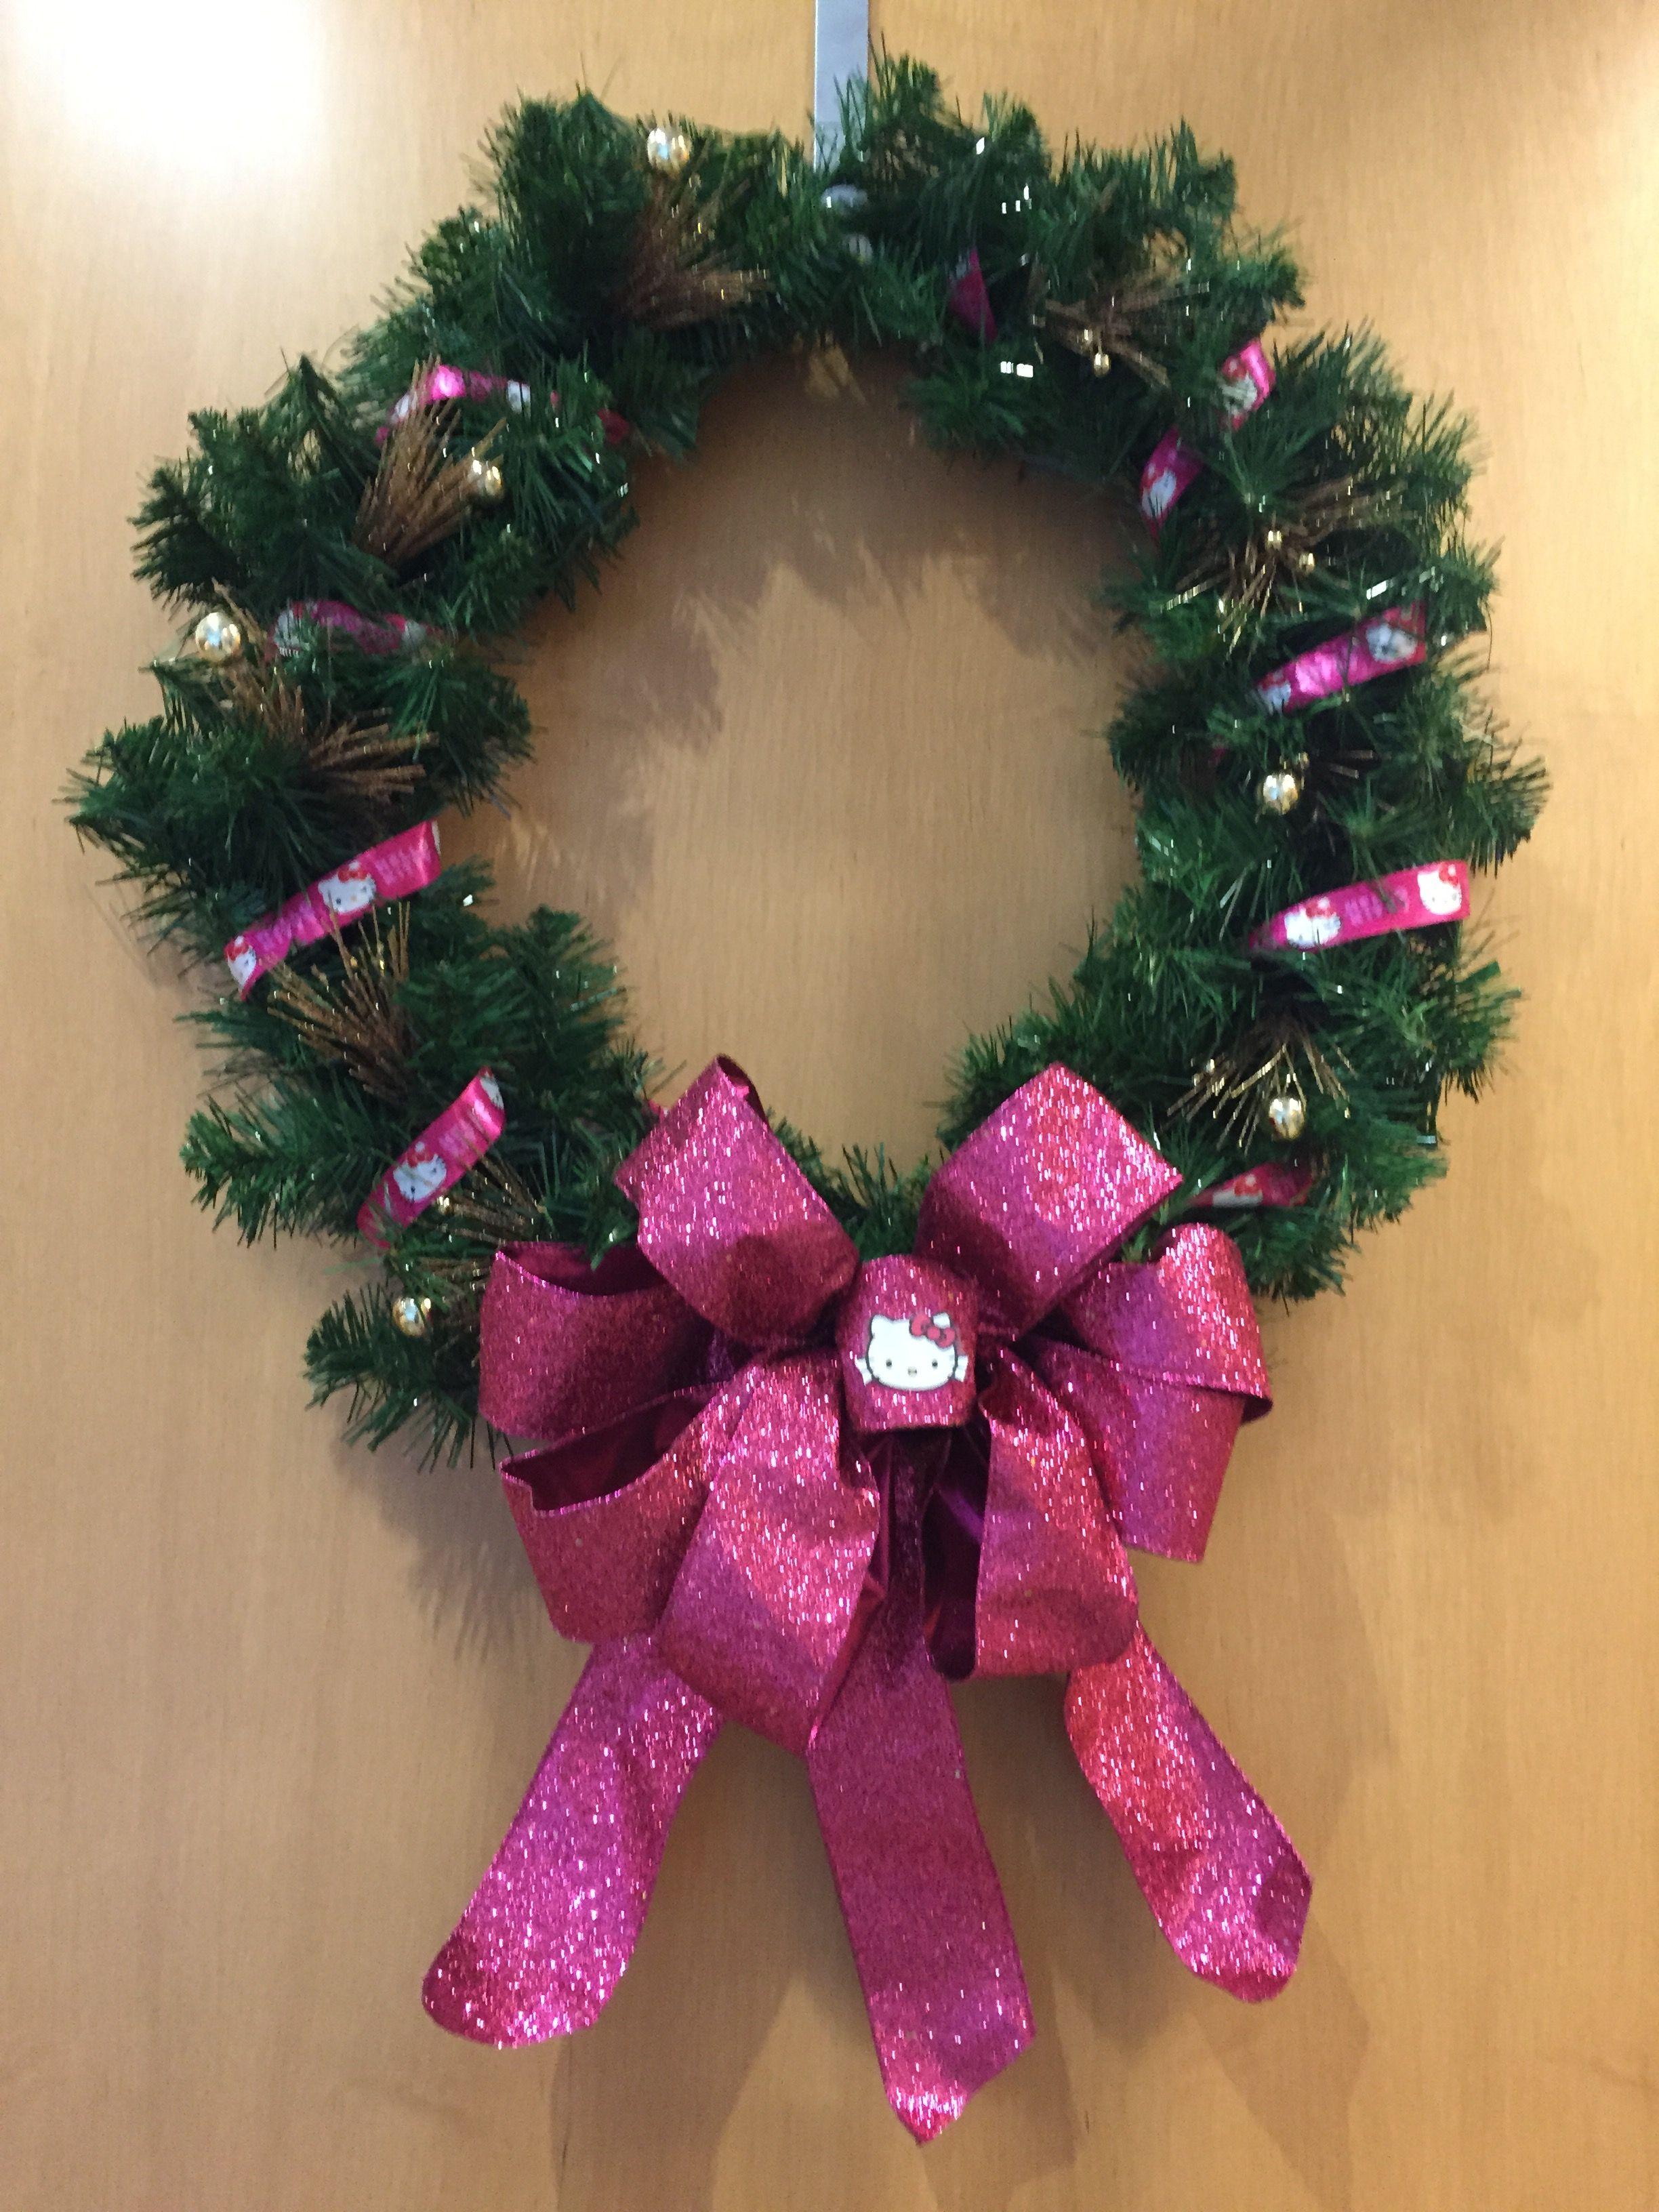 Sara LaFone made this awesome Hello Kitty wreath for me!!